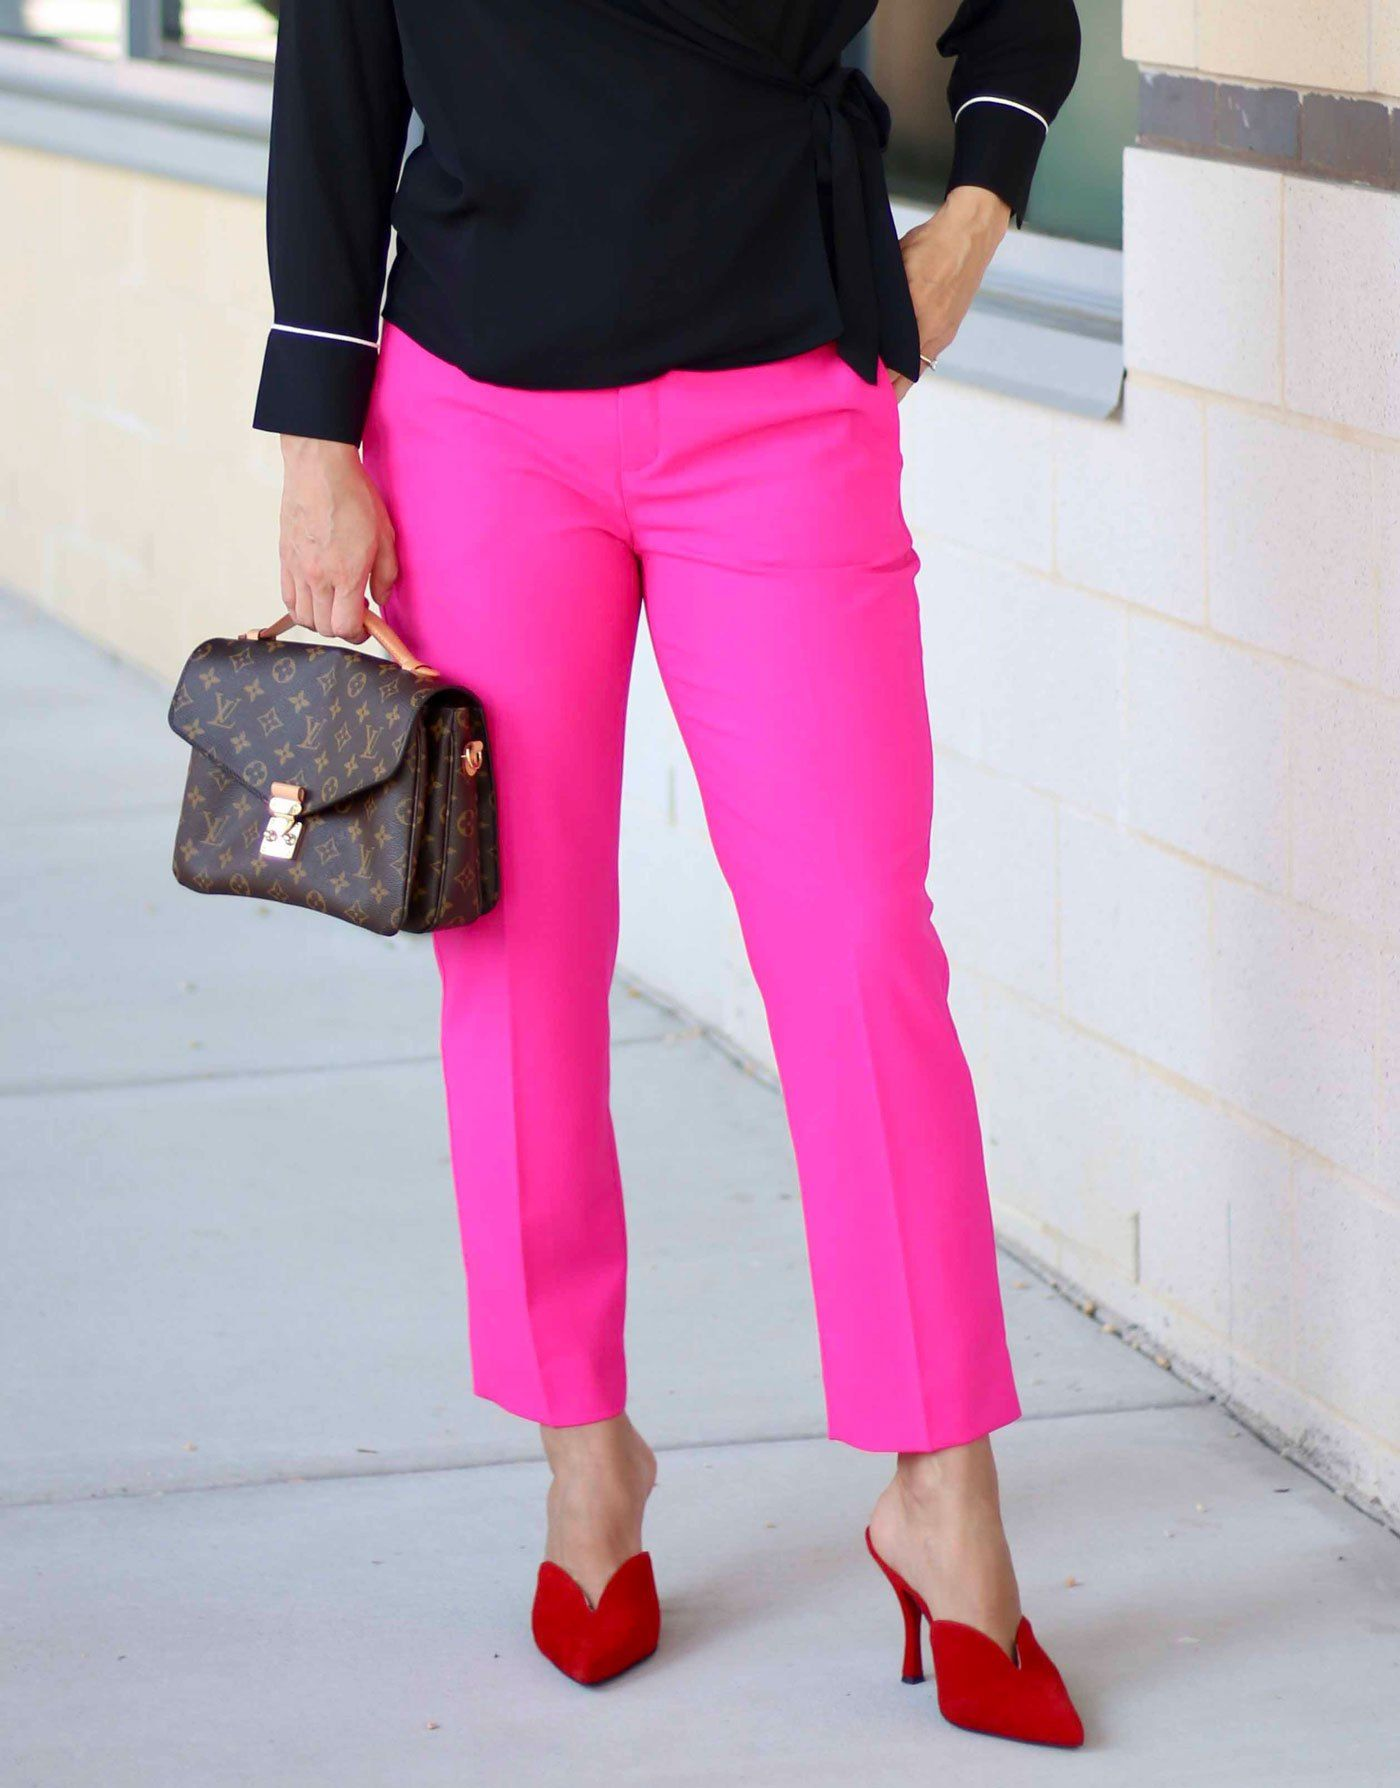 Hot Pink Pants - Pink and Red Color Combo | Hot pink pants ...